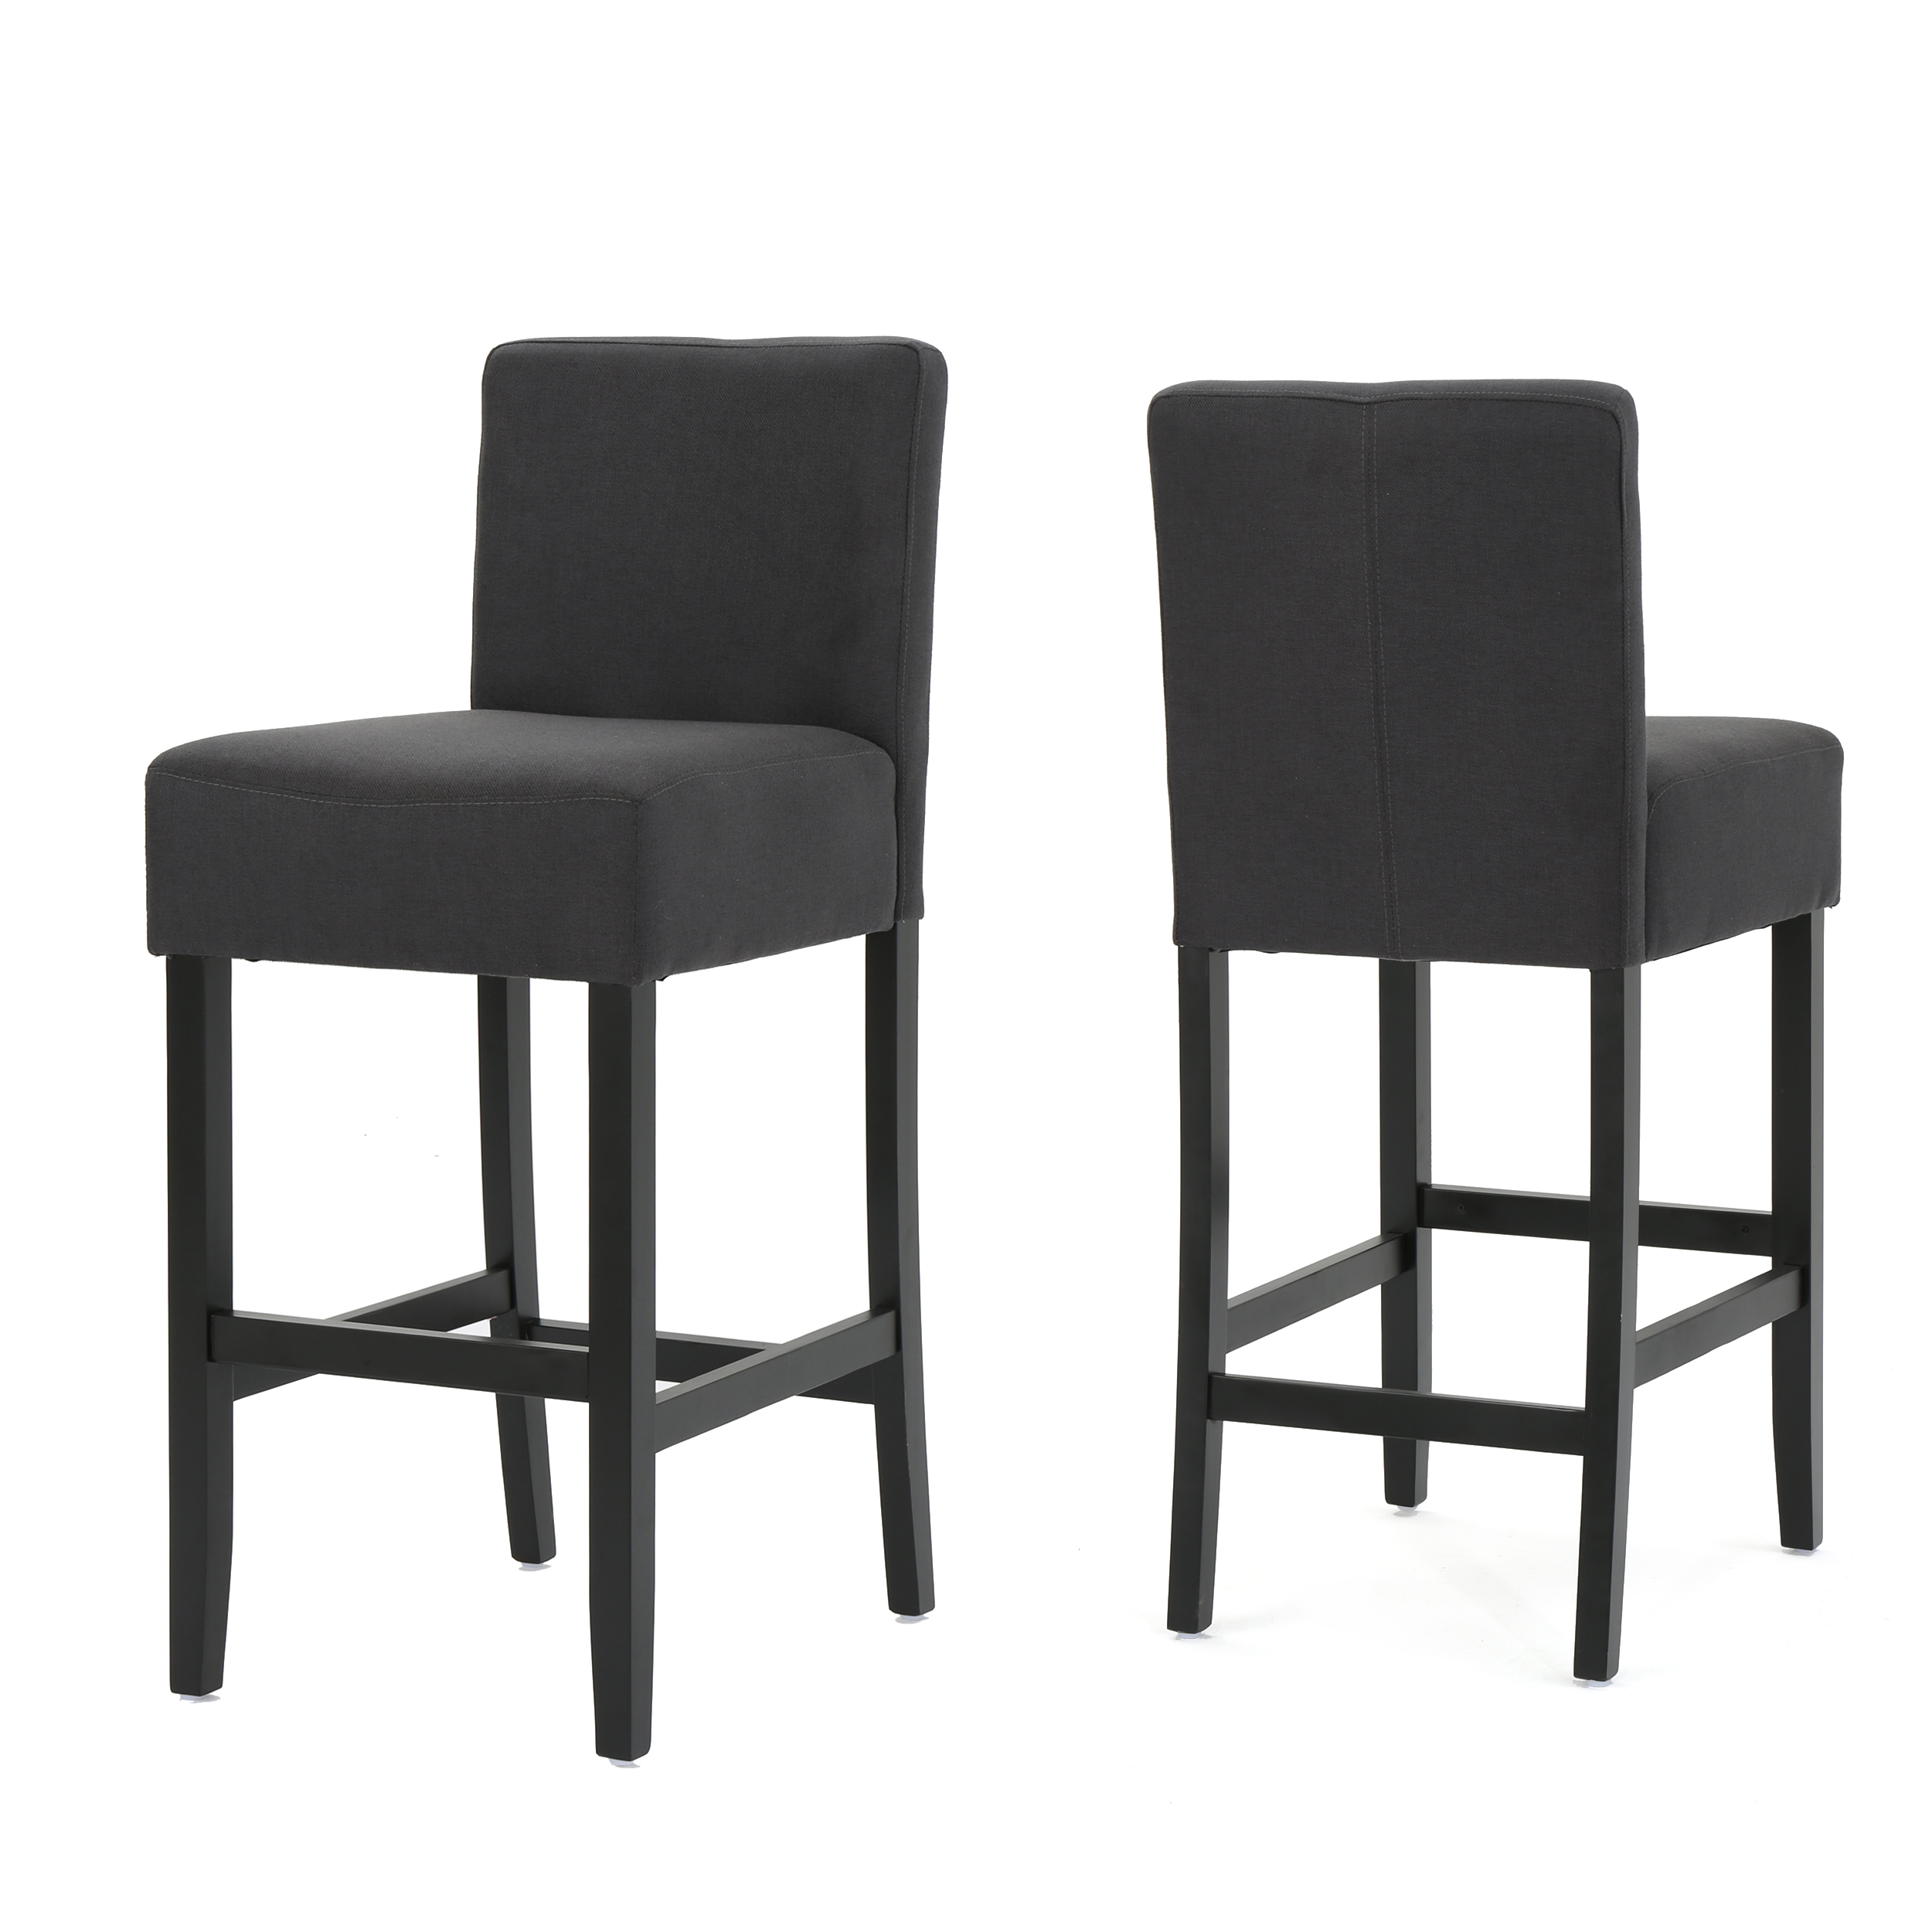 Prim Fabric Barstools, Set of 2, Dark Charcoal